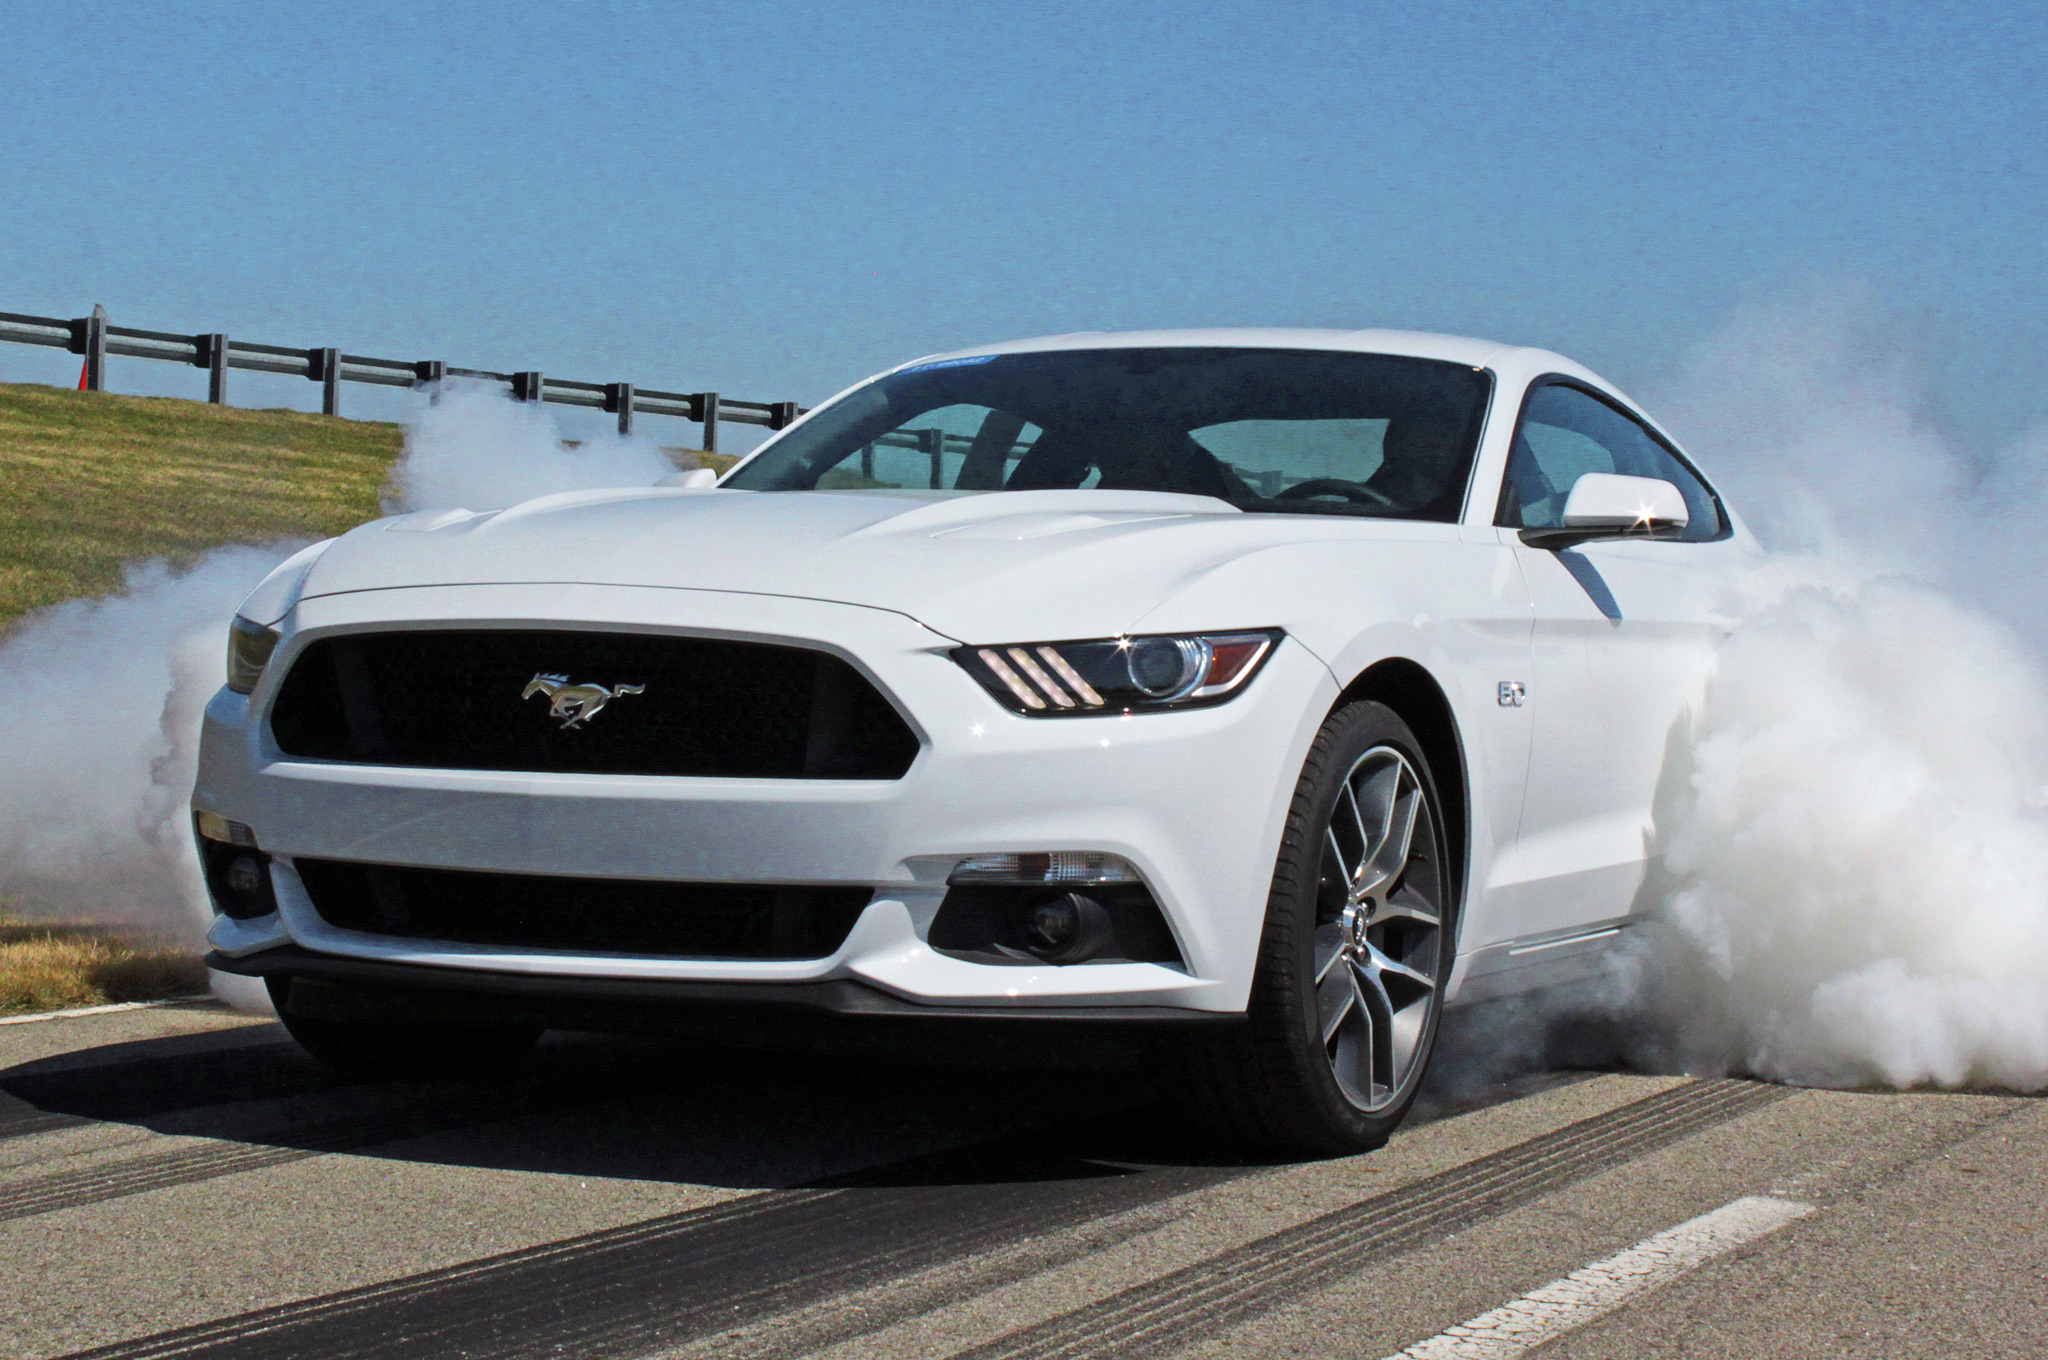 2015 Ford Mustang Gt White (Photo 22 of 30)